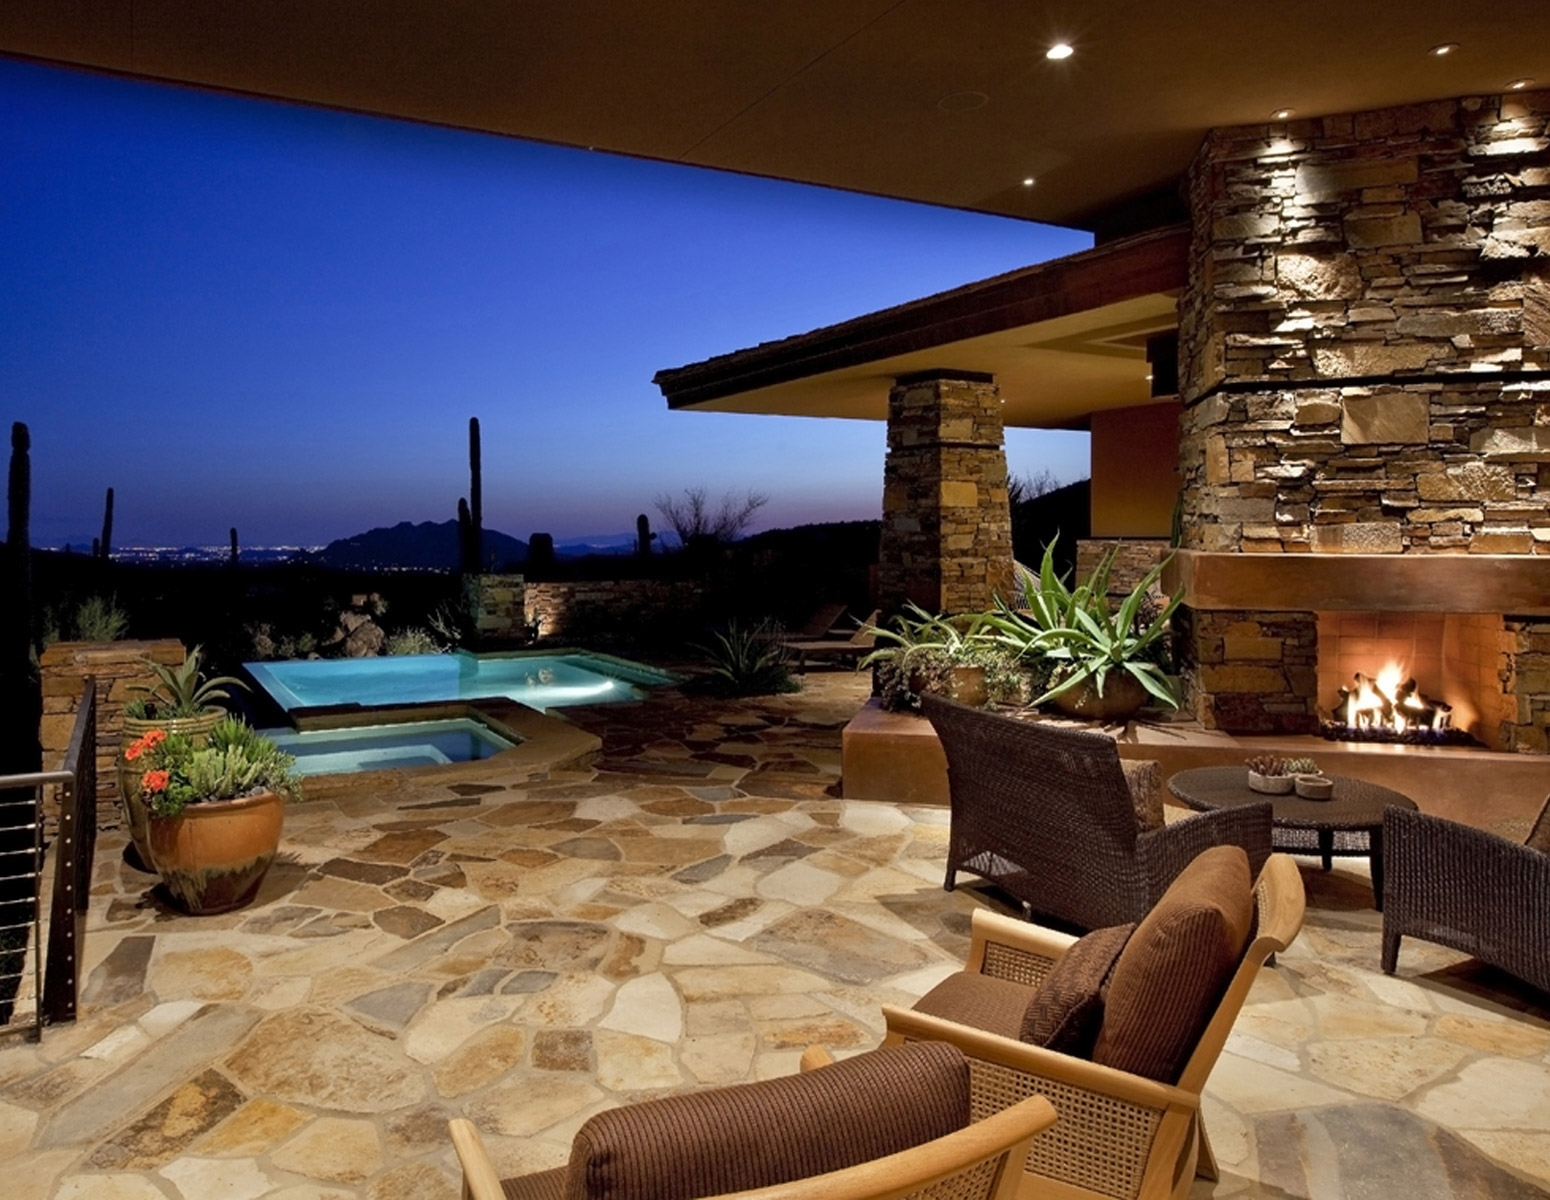 Houzz Expands Operations into Arizona Office of the